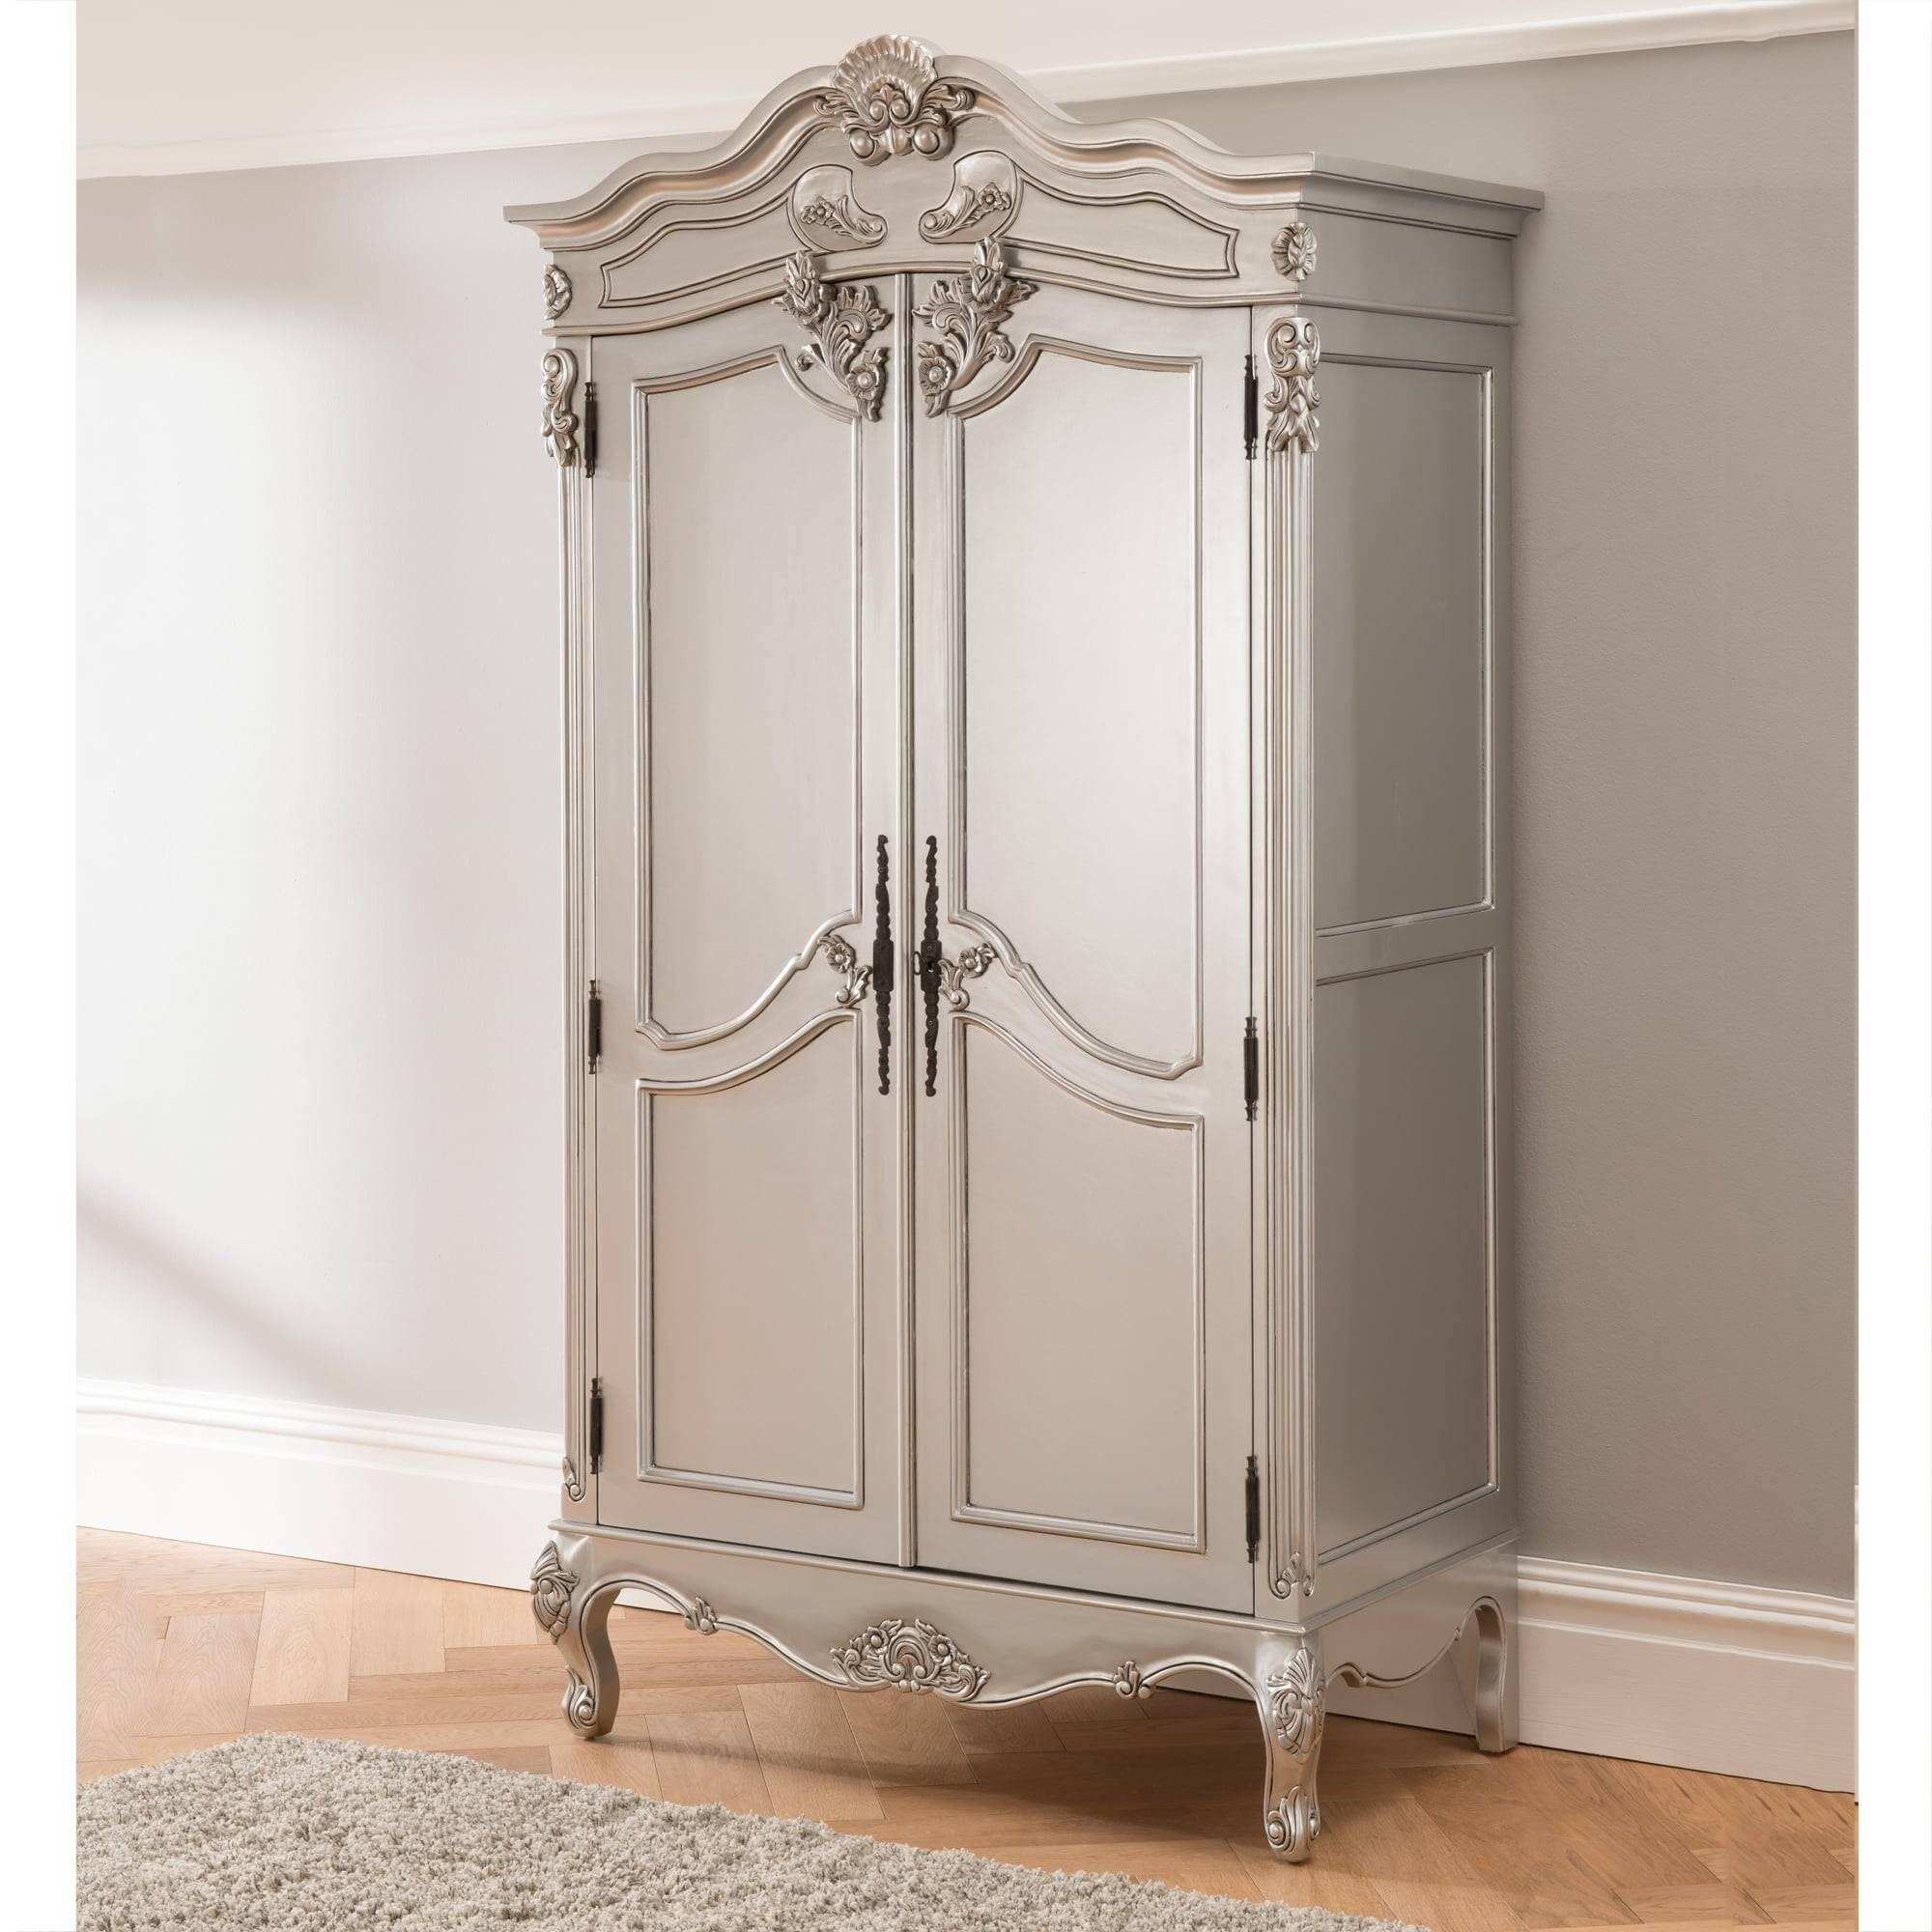 Baroque Antique French Wardrobe Works Exceptional Alongside Our in Chic Wardrobes (Image 1 of 15)